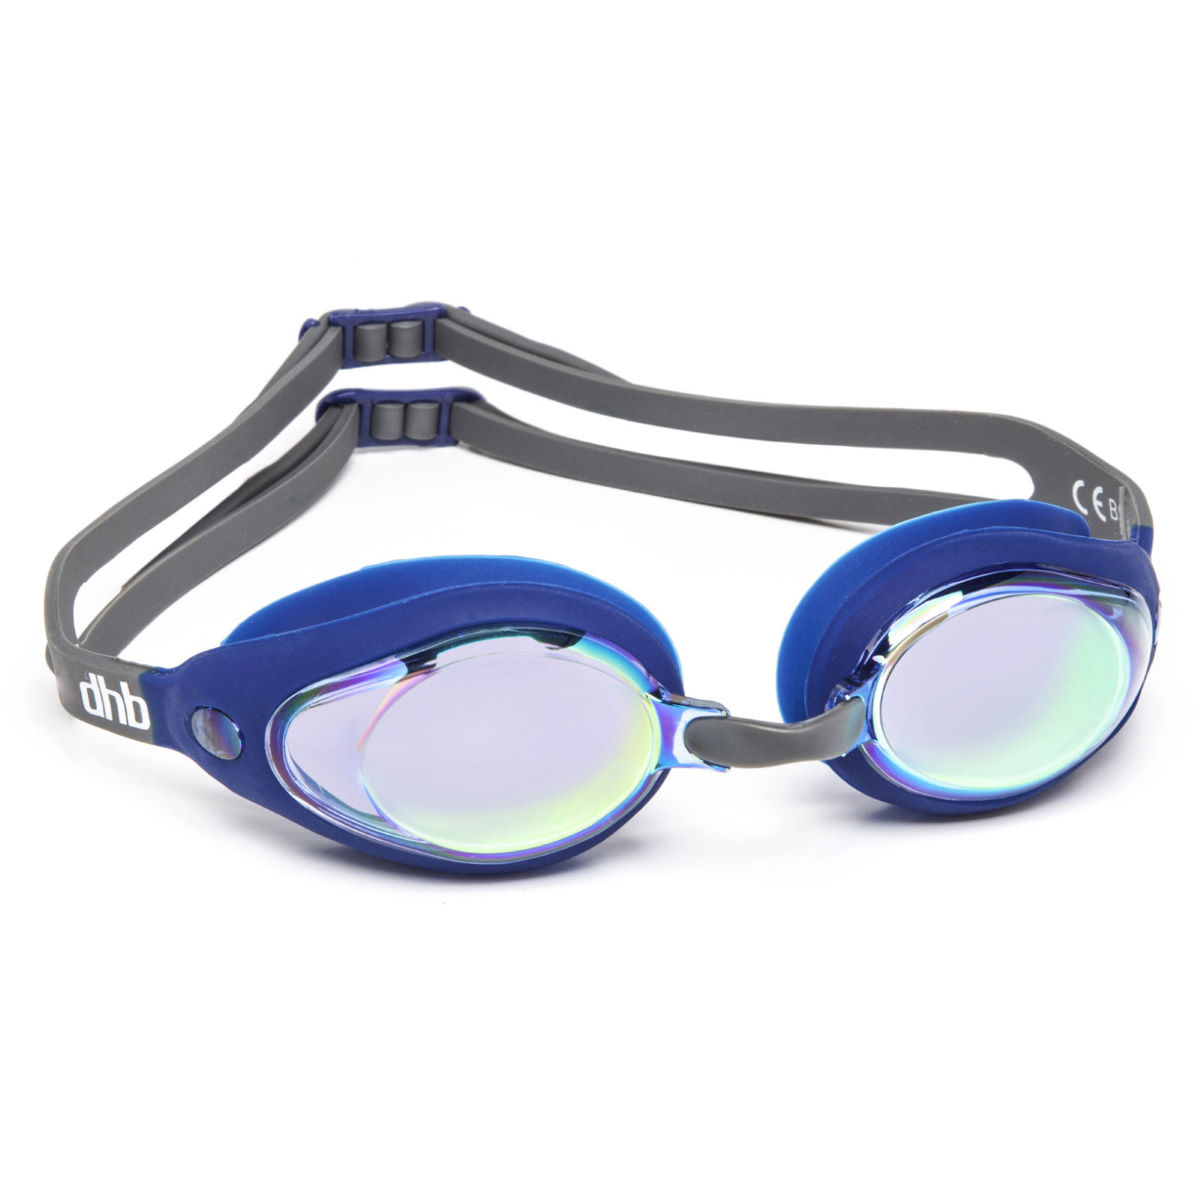 Dhb Socket Mirror Goggles - One Size Blue  Goggles